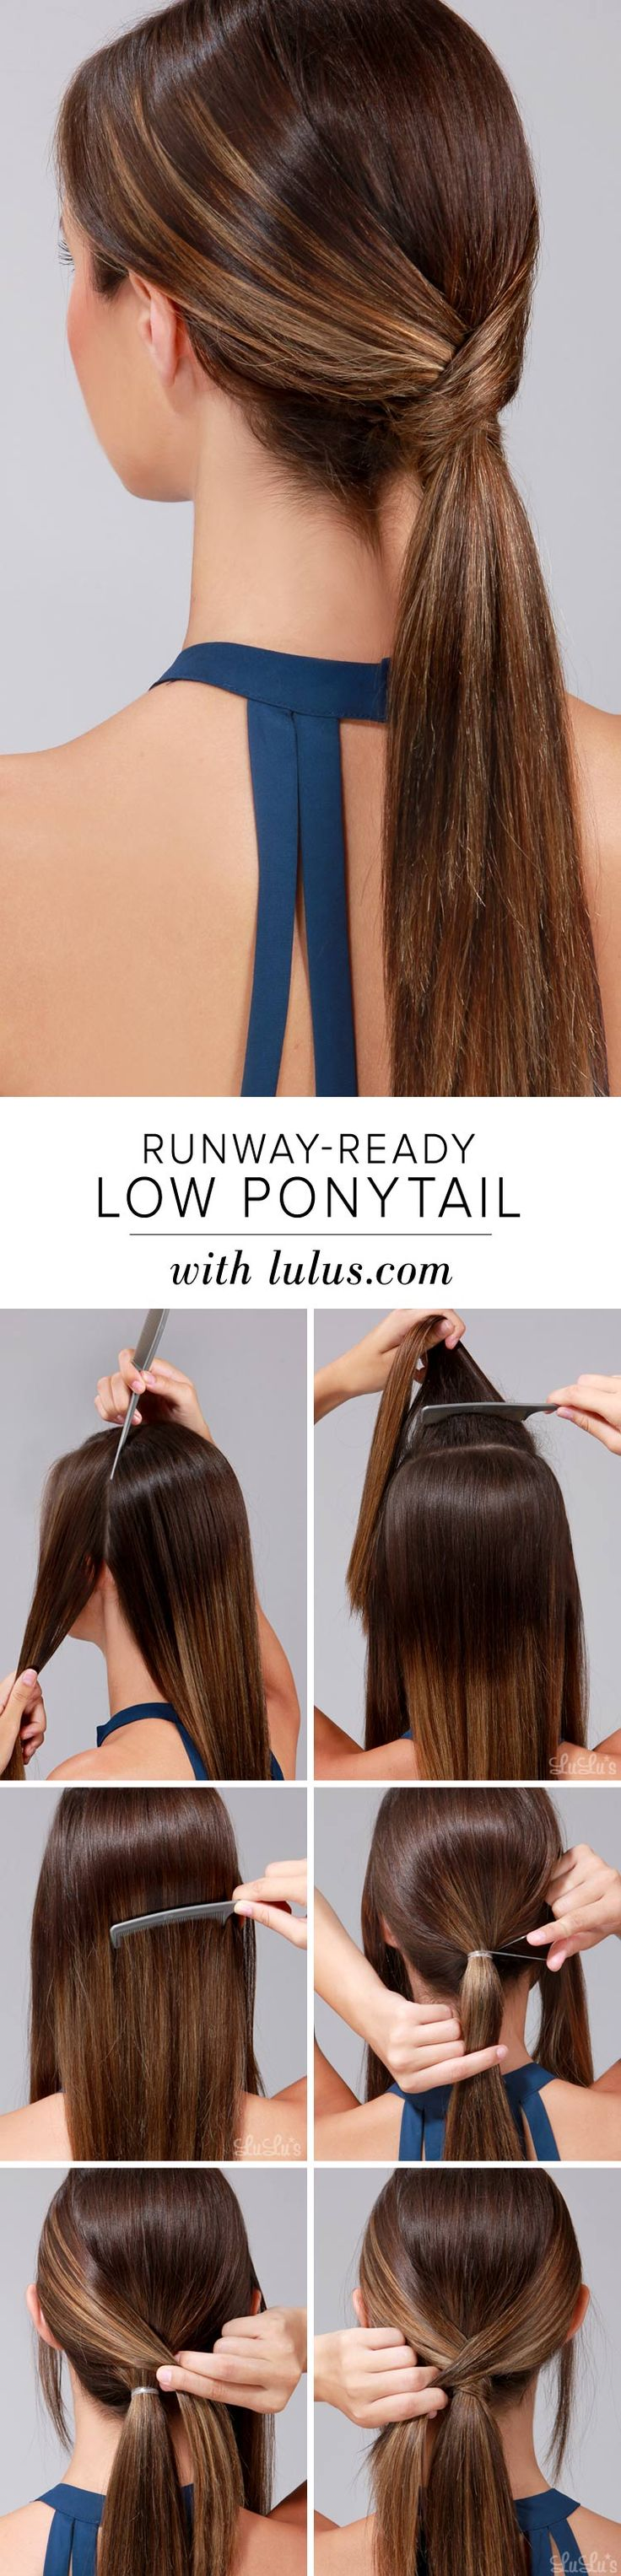 Astonishing 1000 Ideas About Cute Easy Ponytails On Pinterest Quick Short Hairstyles For Black Women Fulllsitofus